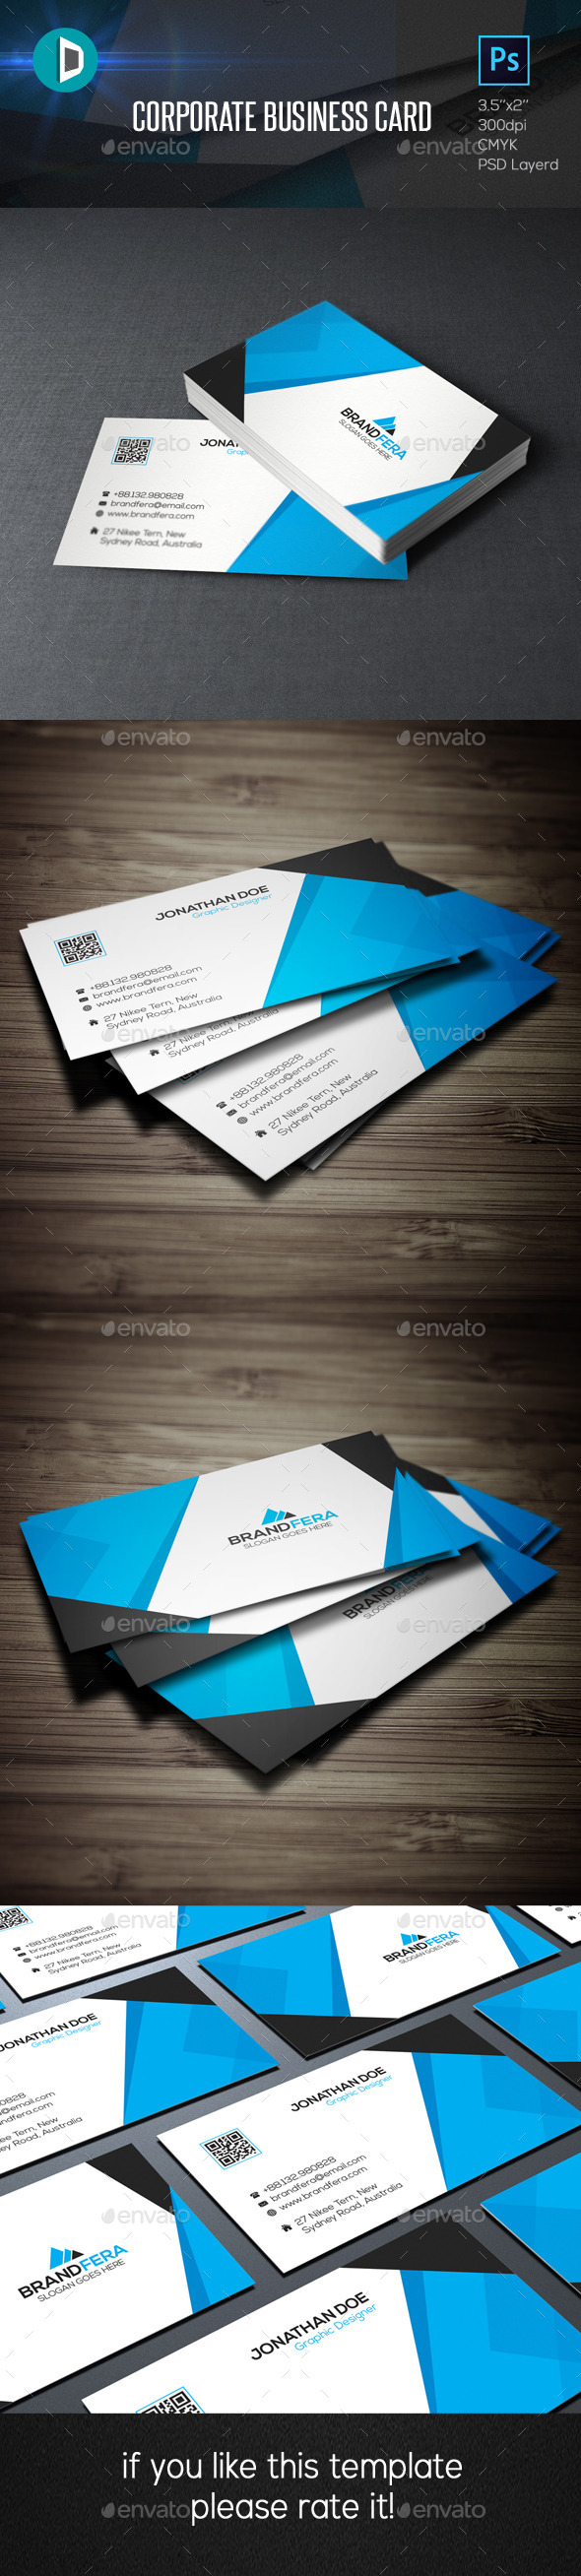 GraphicRiver Corporate Business Card 11651694